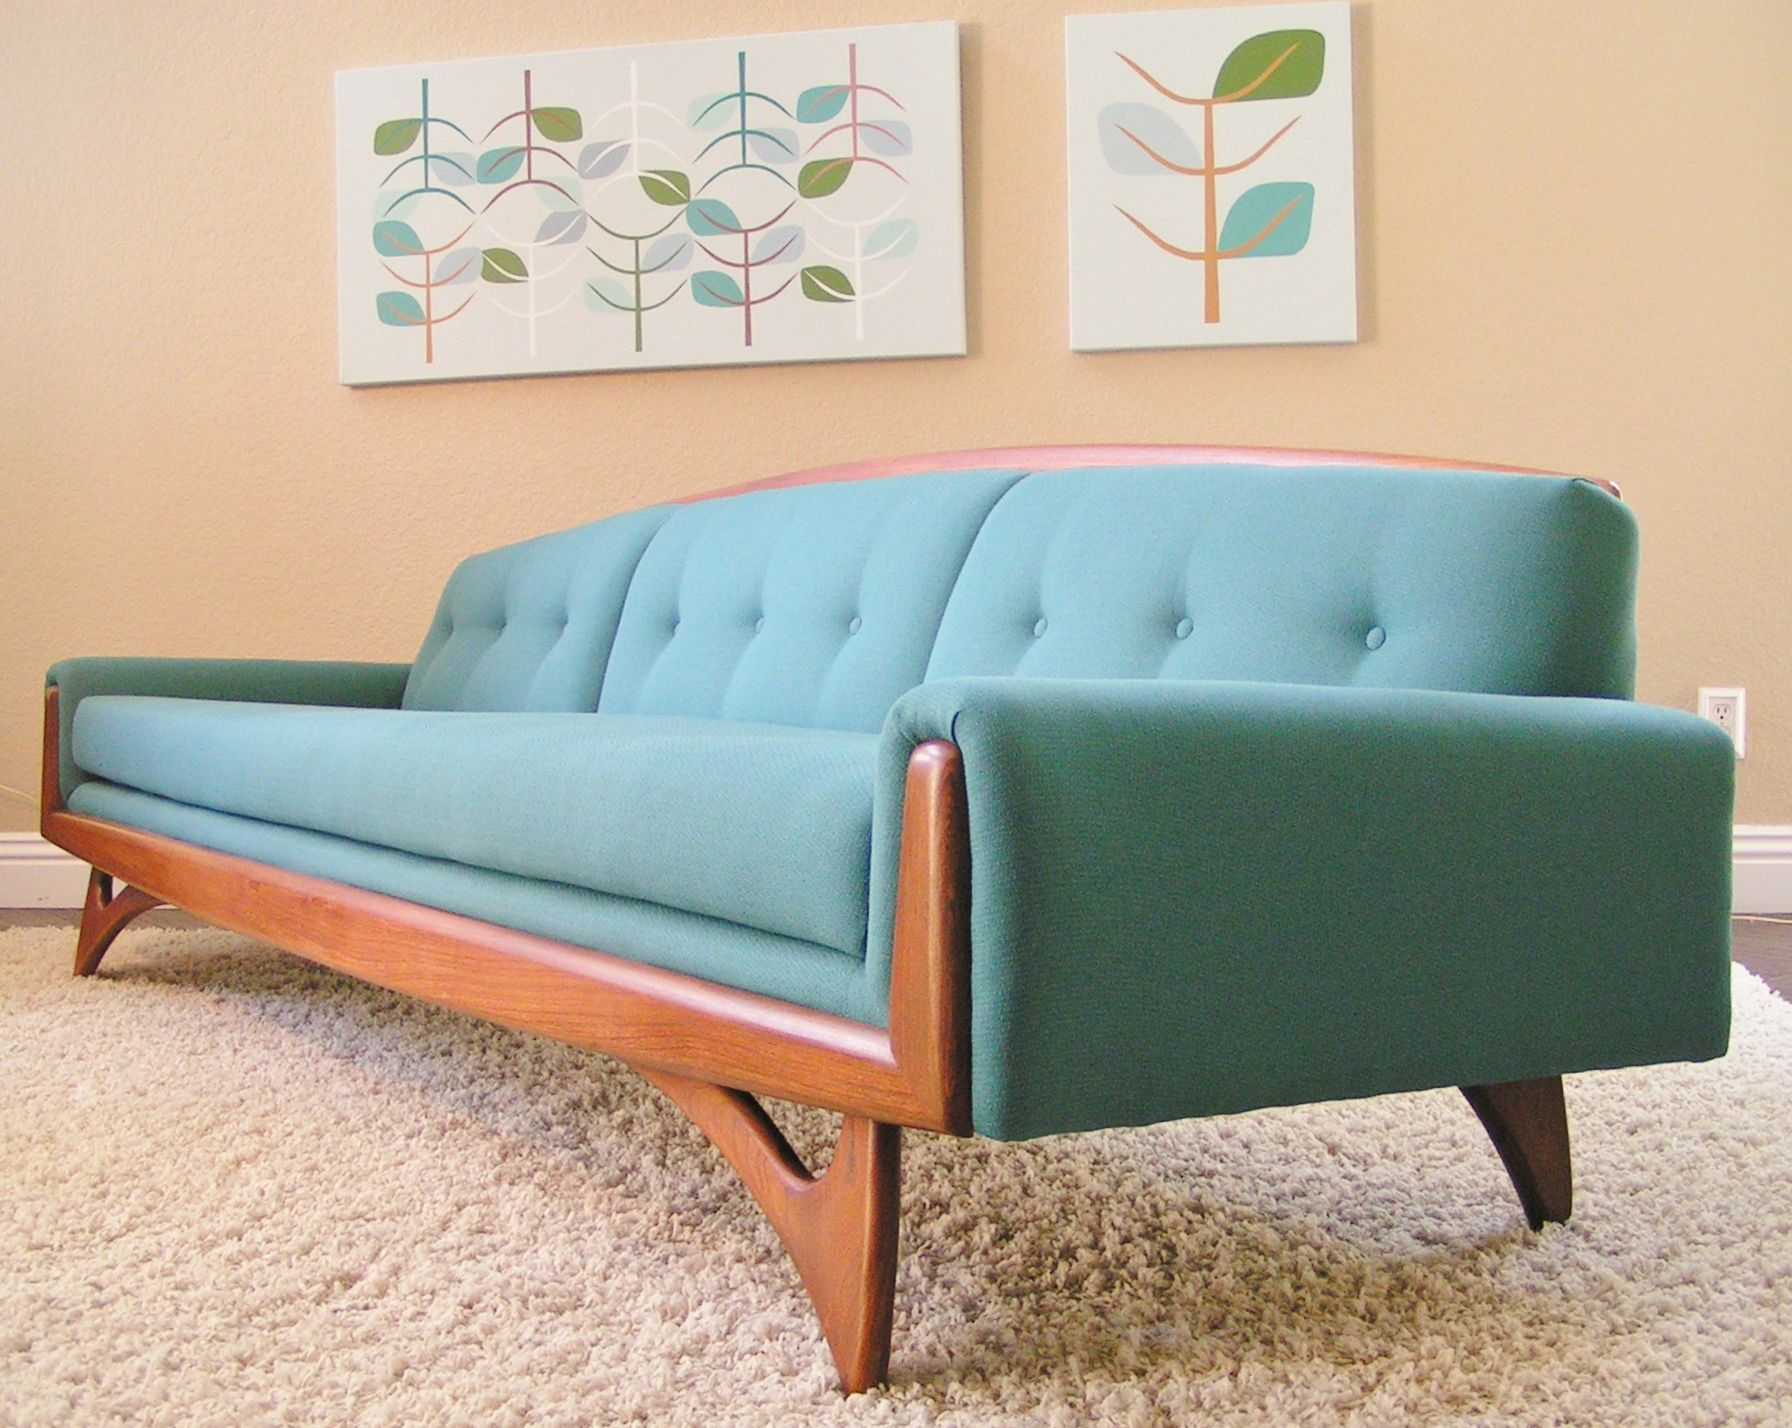 ^ 1000+ images about Mid century furniture on Pinterest rmchairs ...